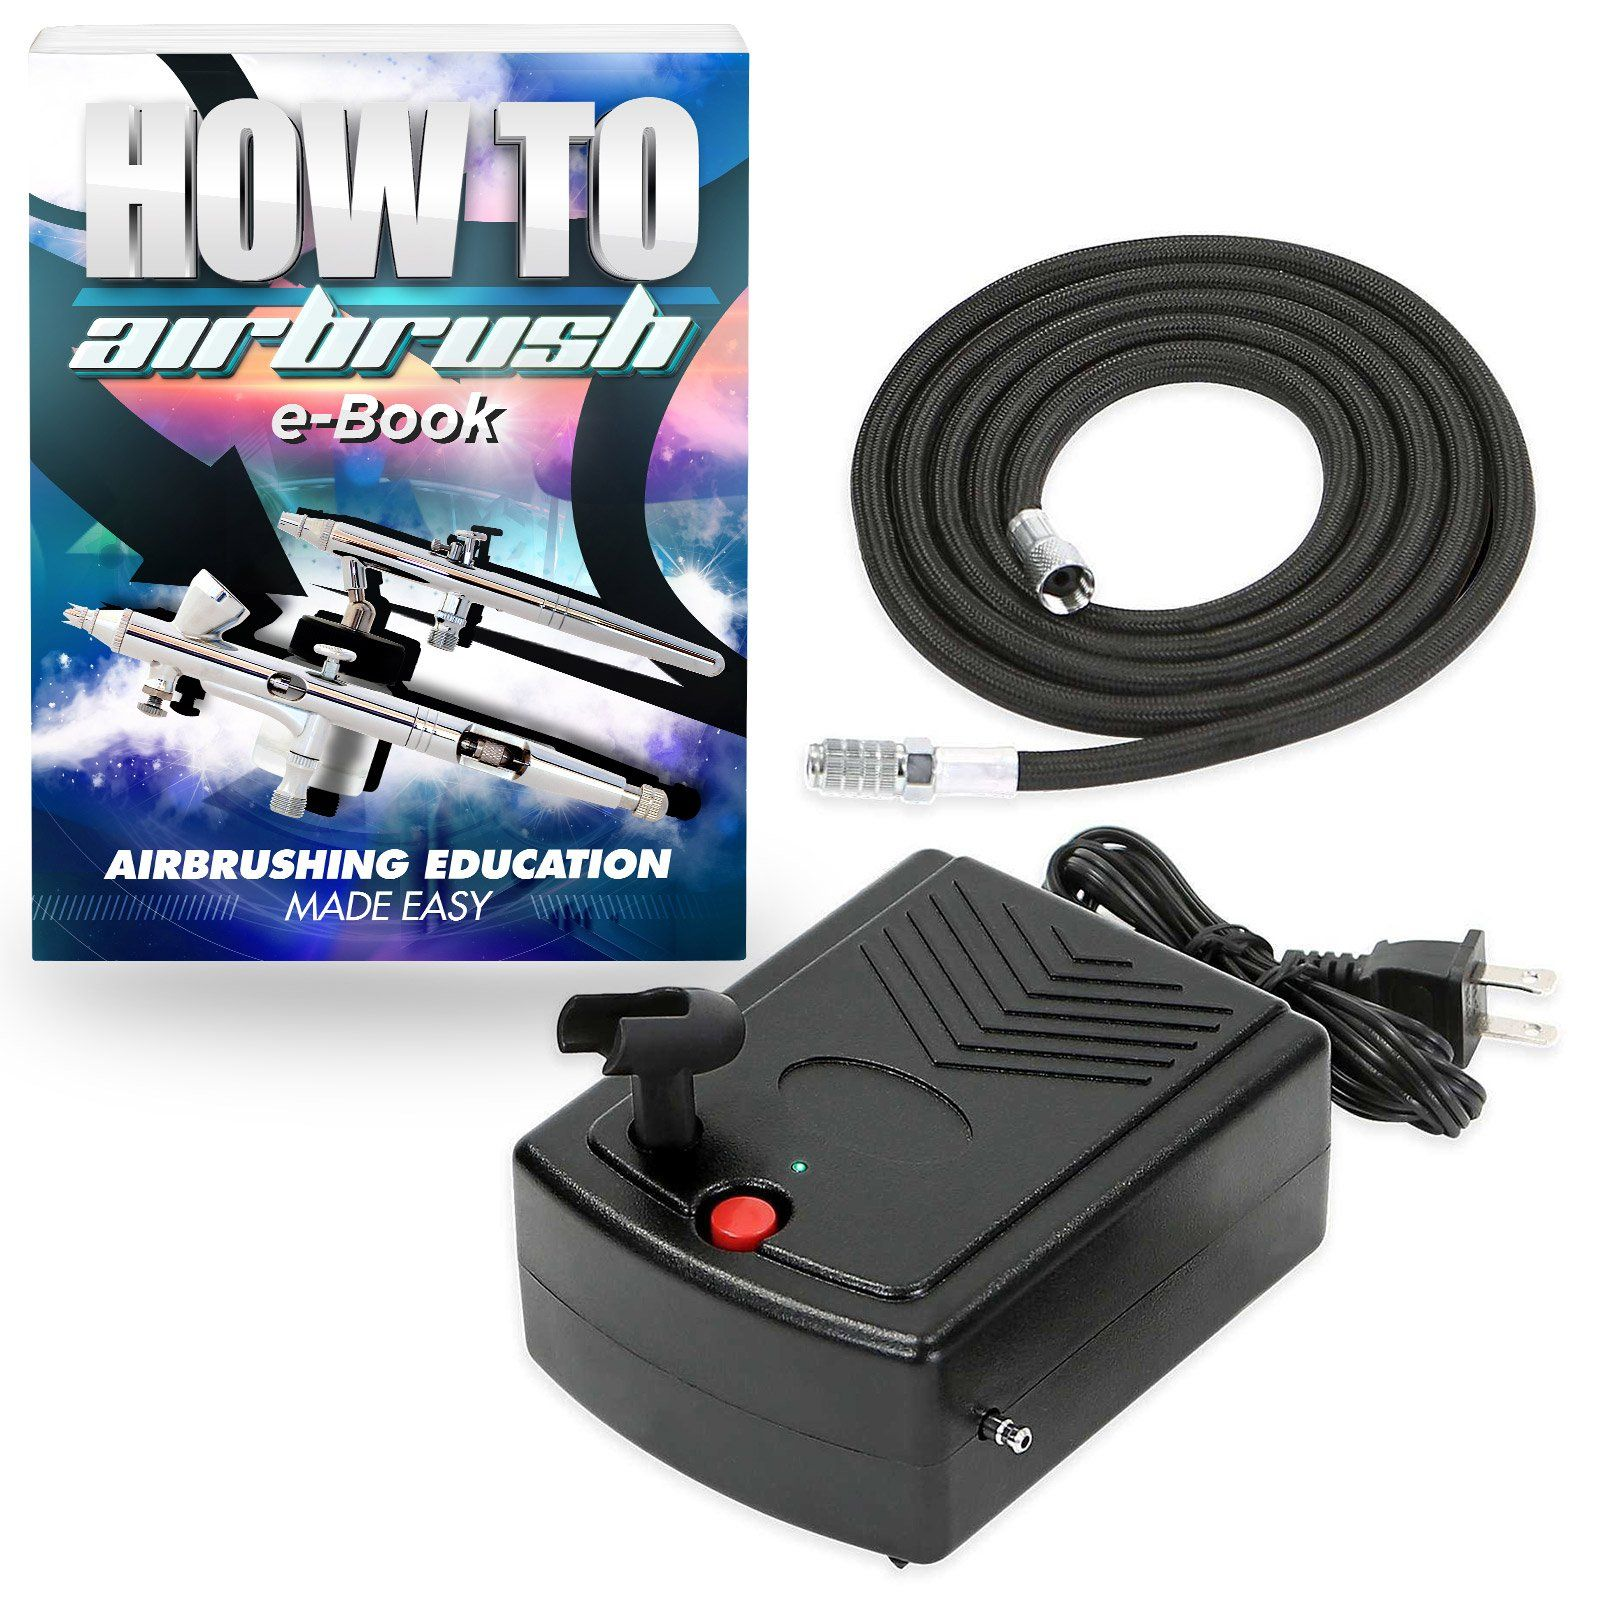 PointZero Mini Airbrush Compressor Portable Hobby Oil